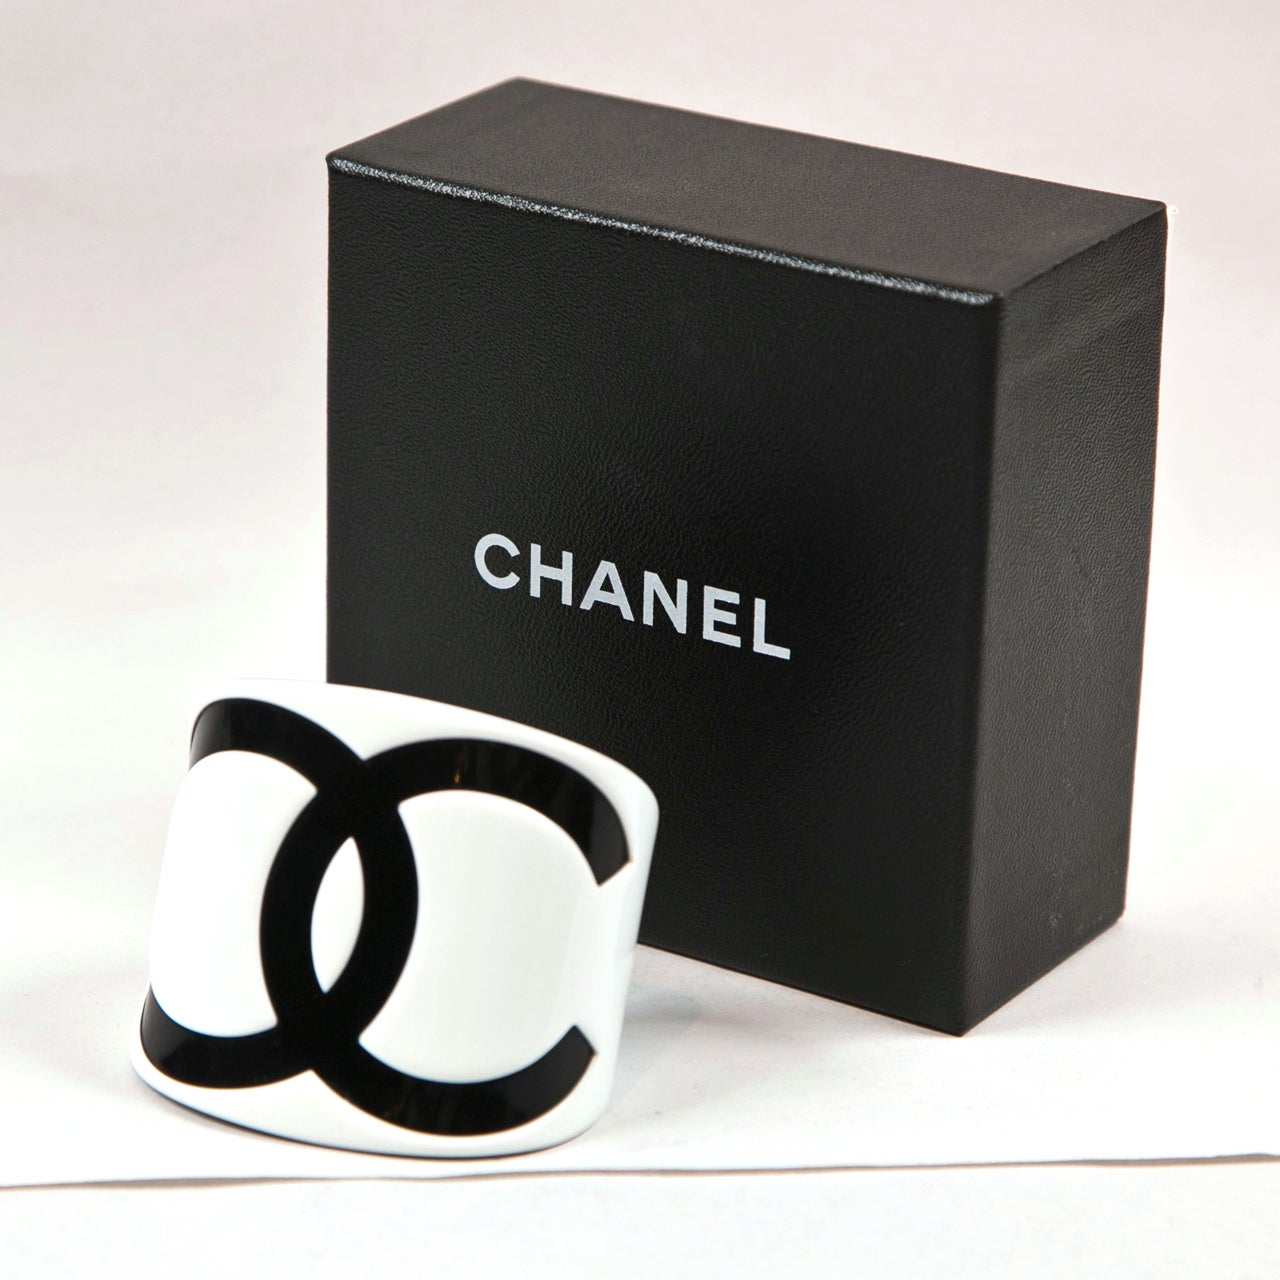 Chanel Resin Cuff image 2